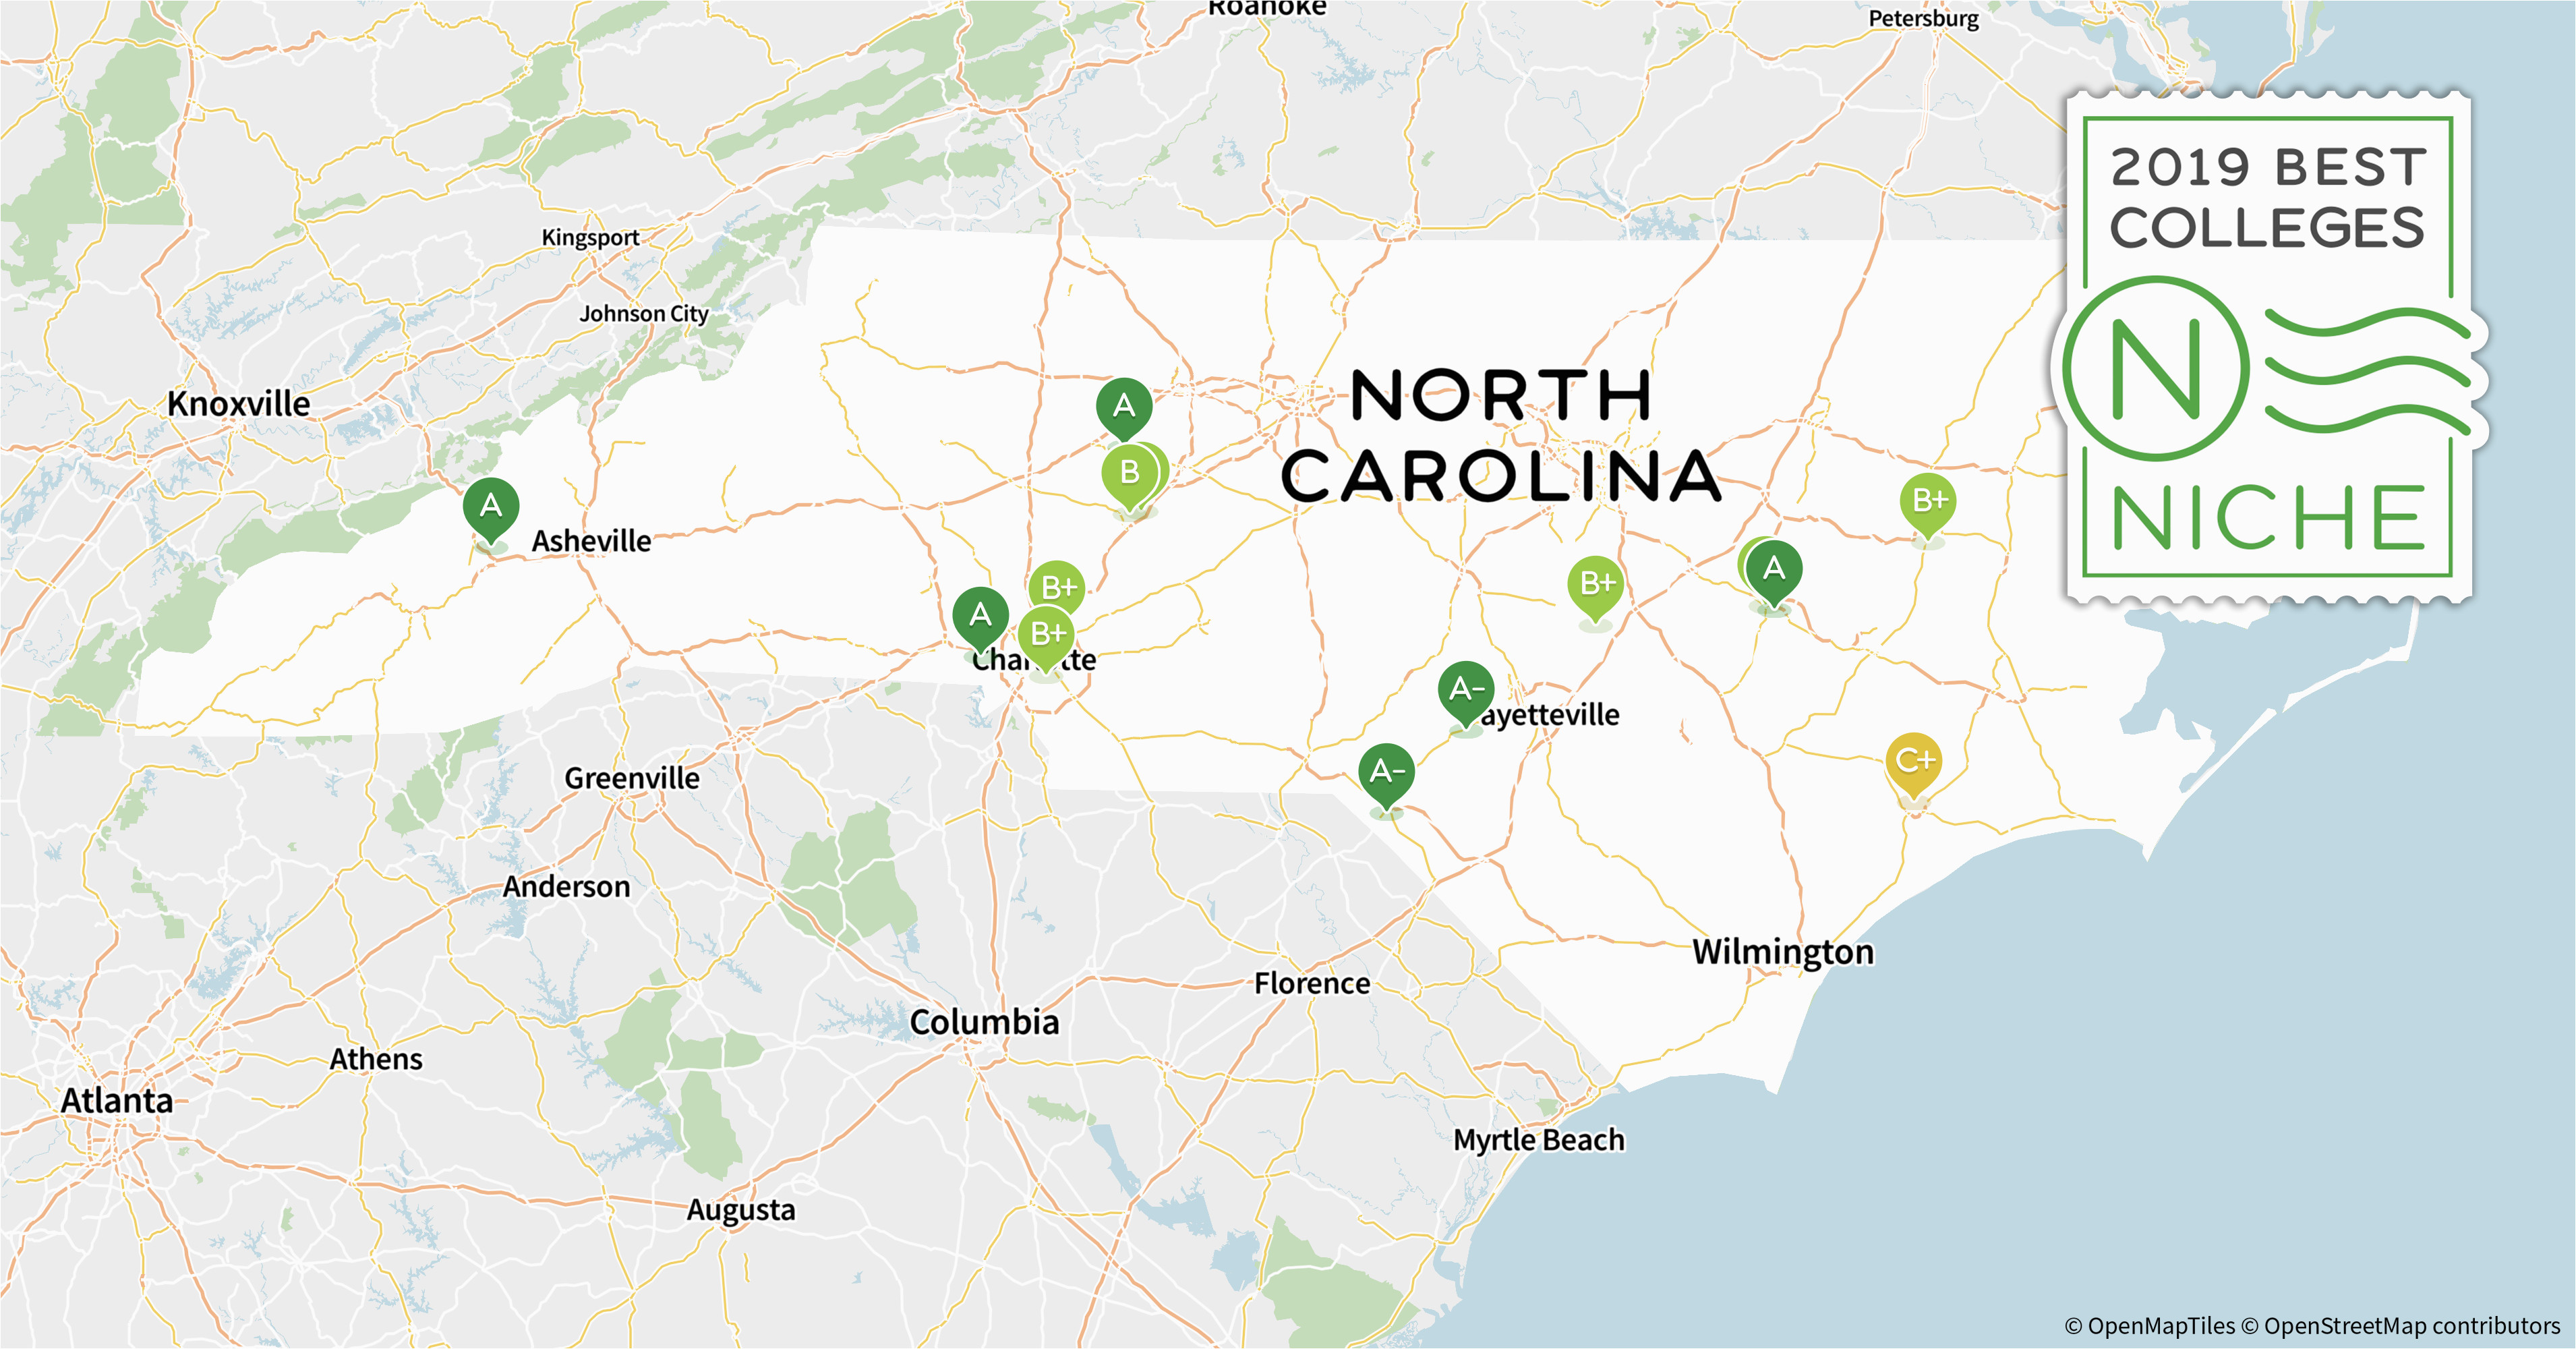 Map Of Colleges and Universities In north Carolina 2019 Best Colleges In north Carolina Niche